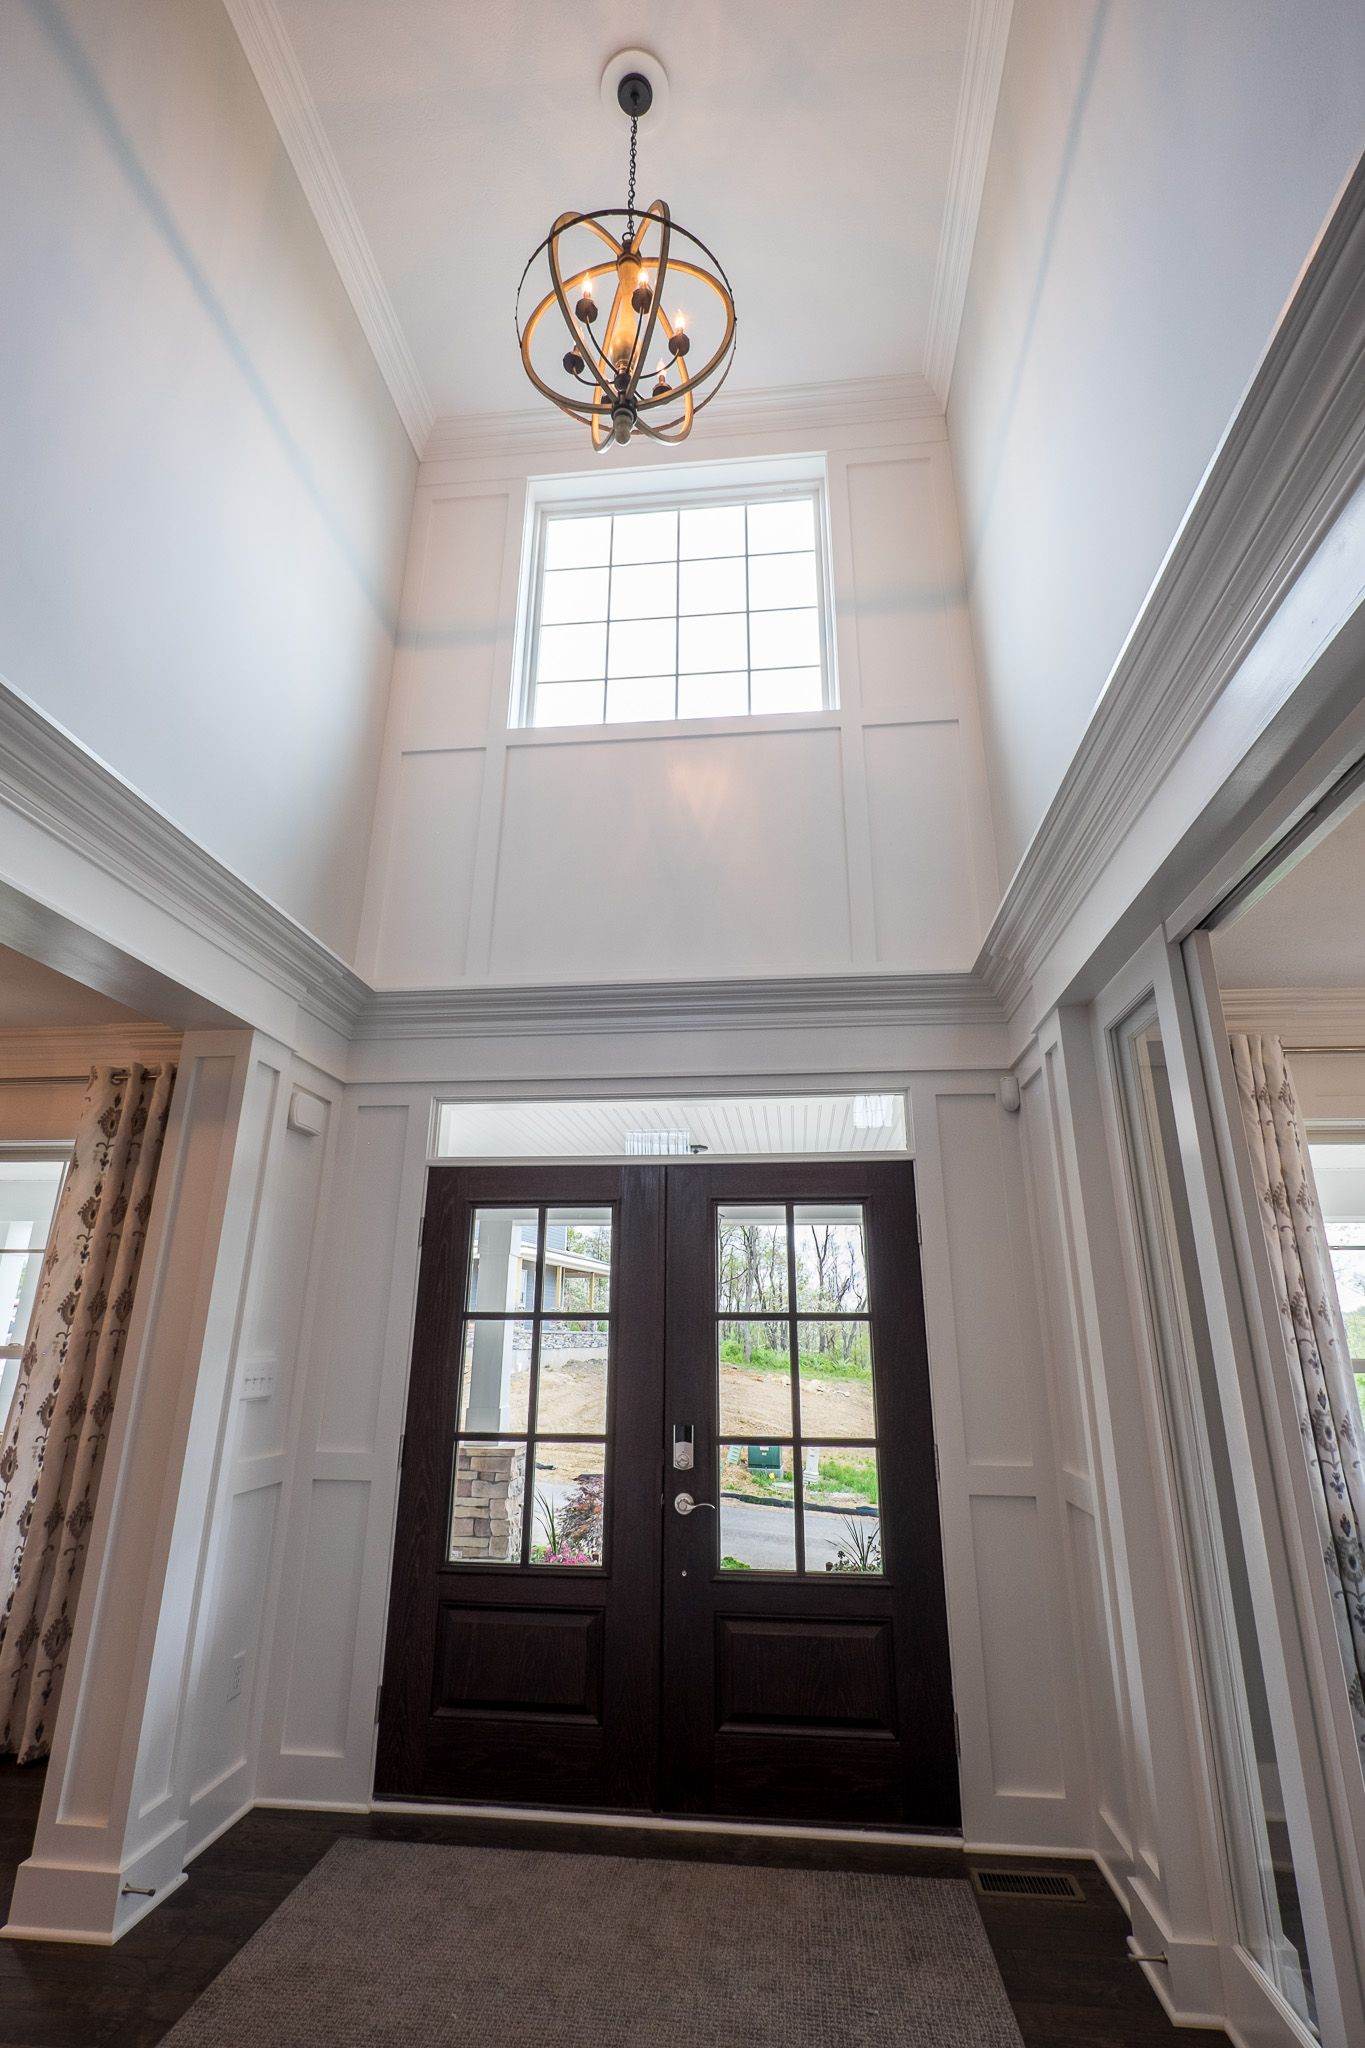 Foyer Window Designs : Window and a orbital light fixture brighten the story